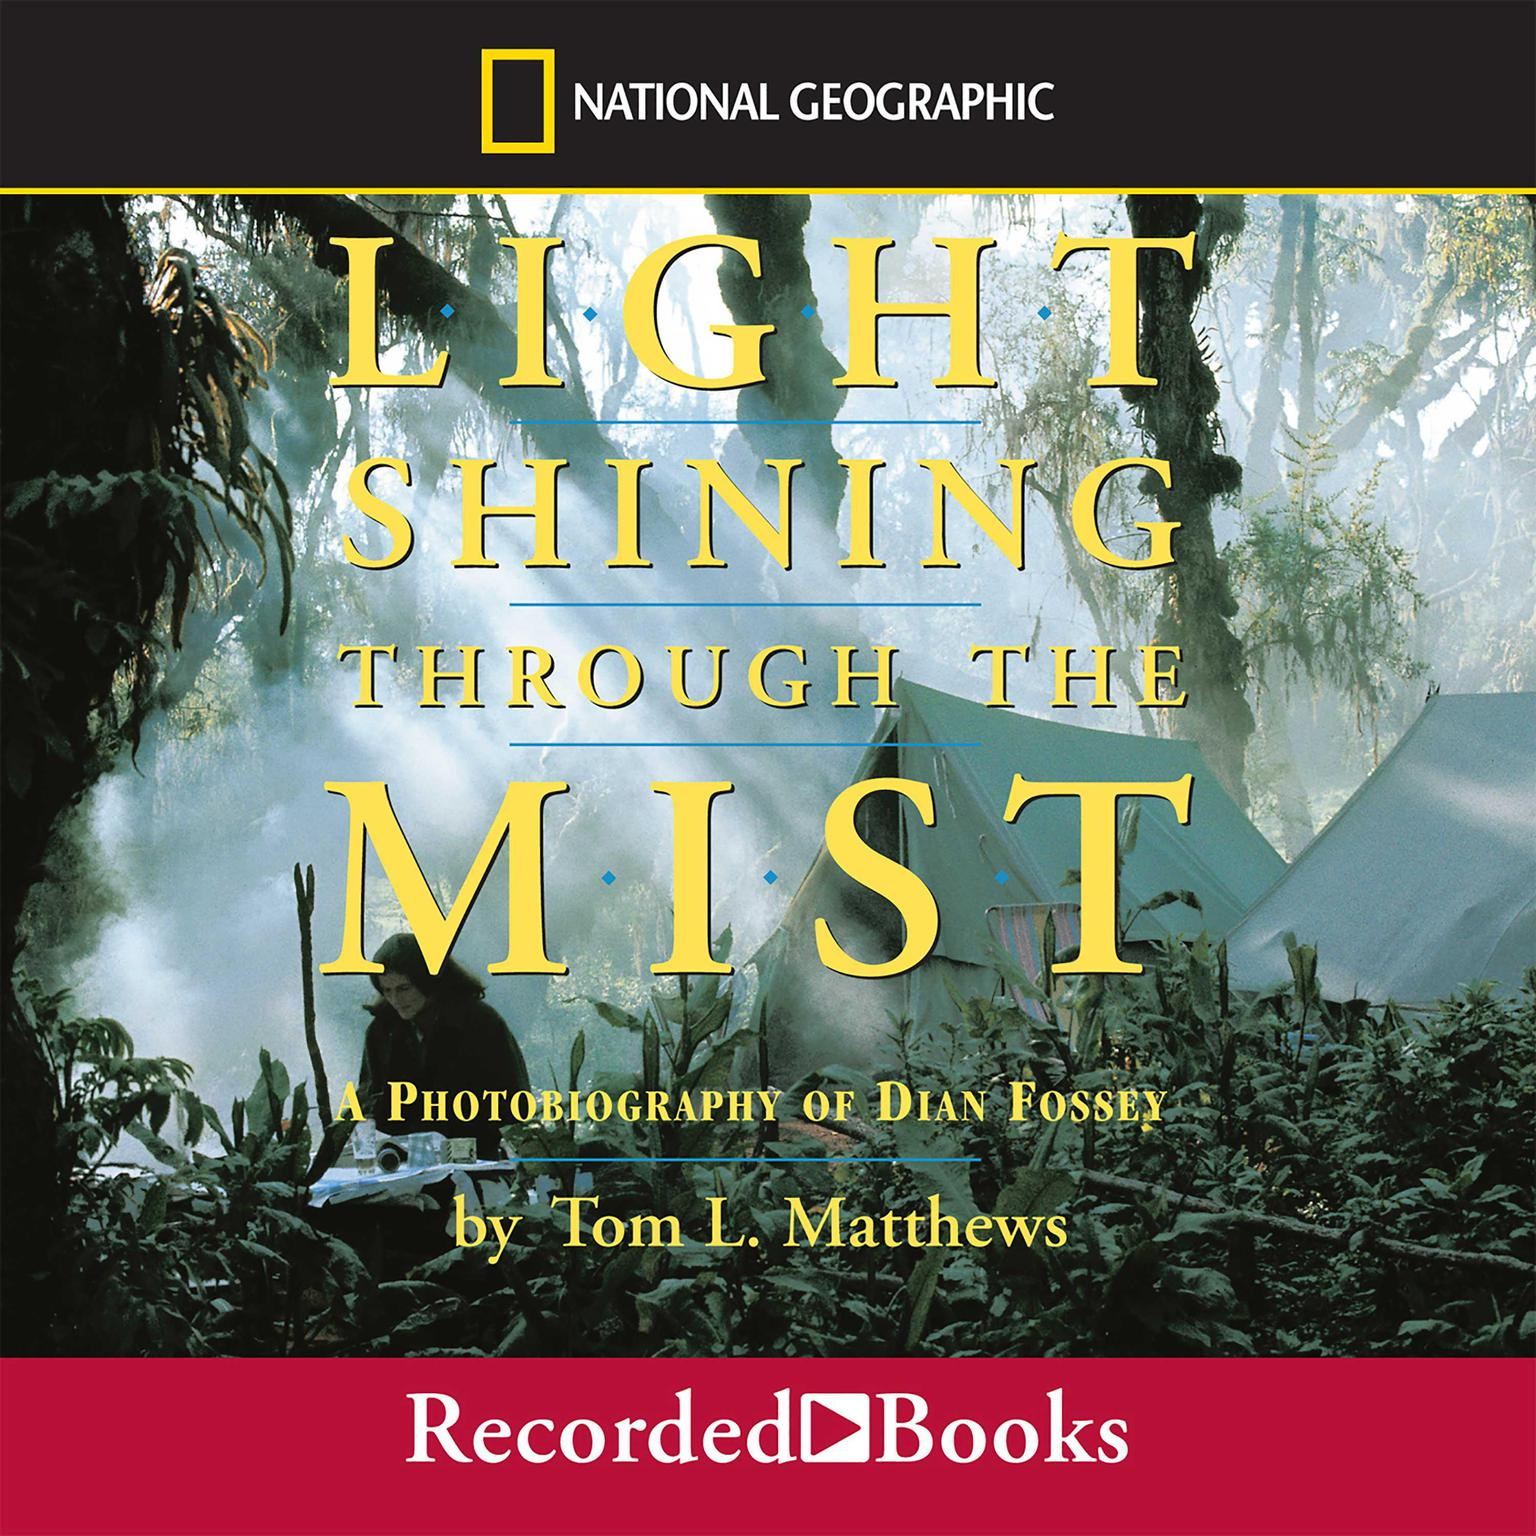 Printable Light Shining through the Mist: A Photobiography of Dian Fossey Audiobook Cover Art